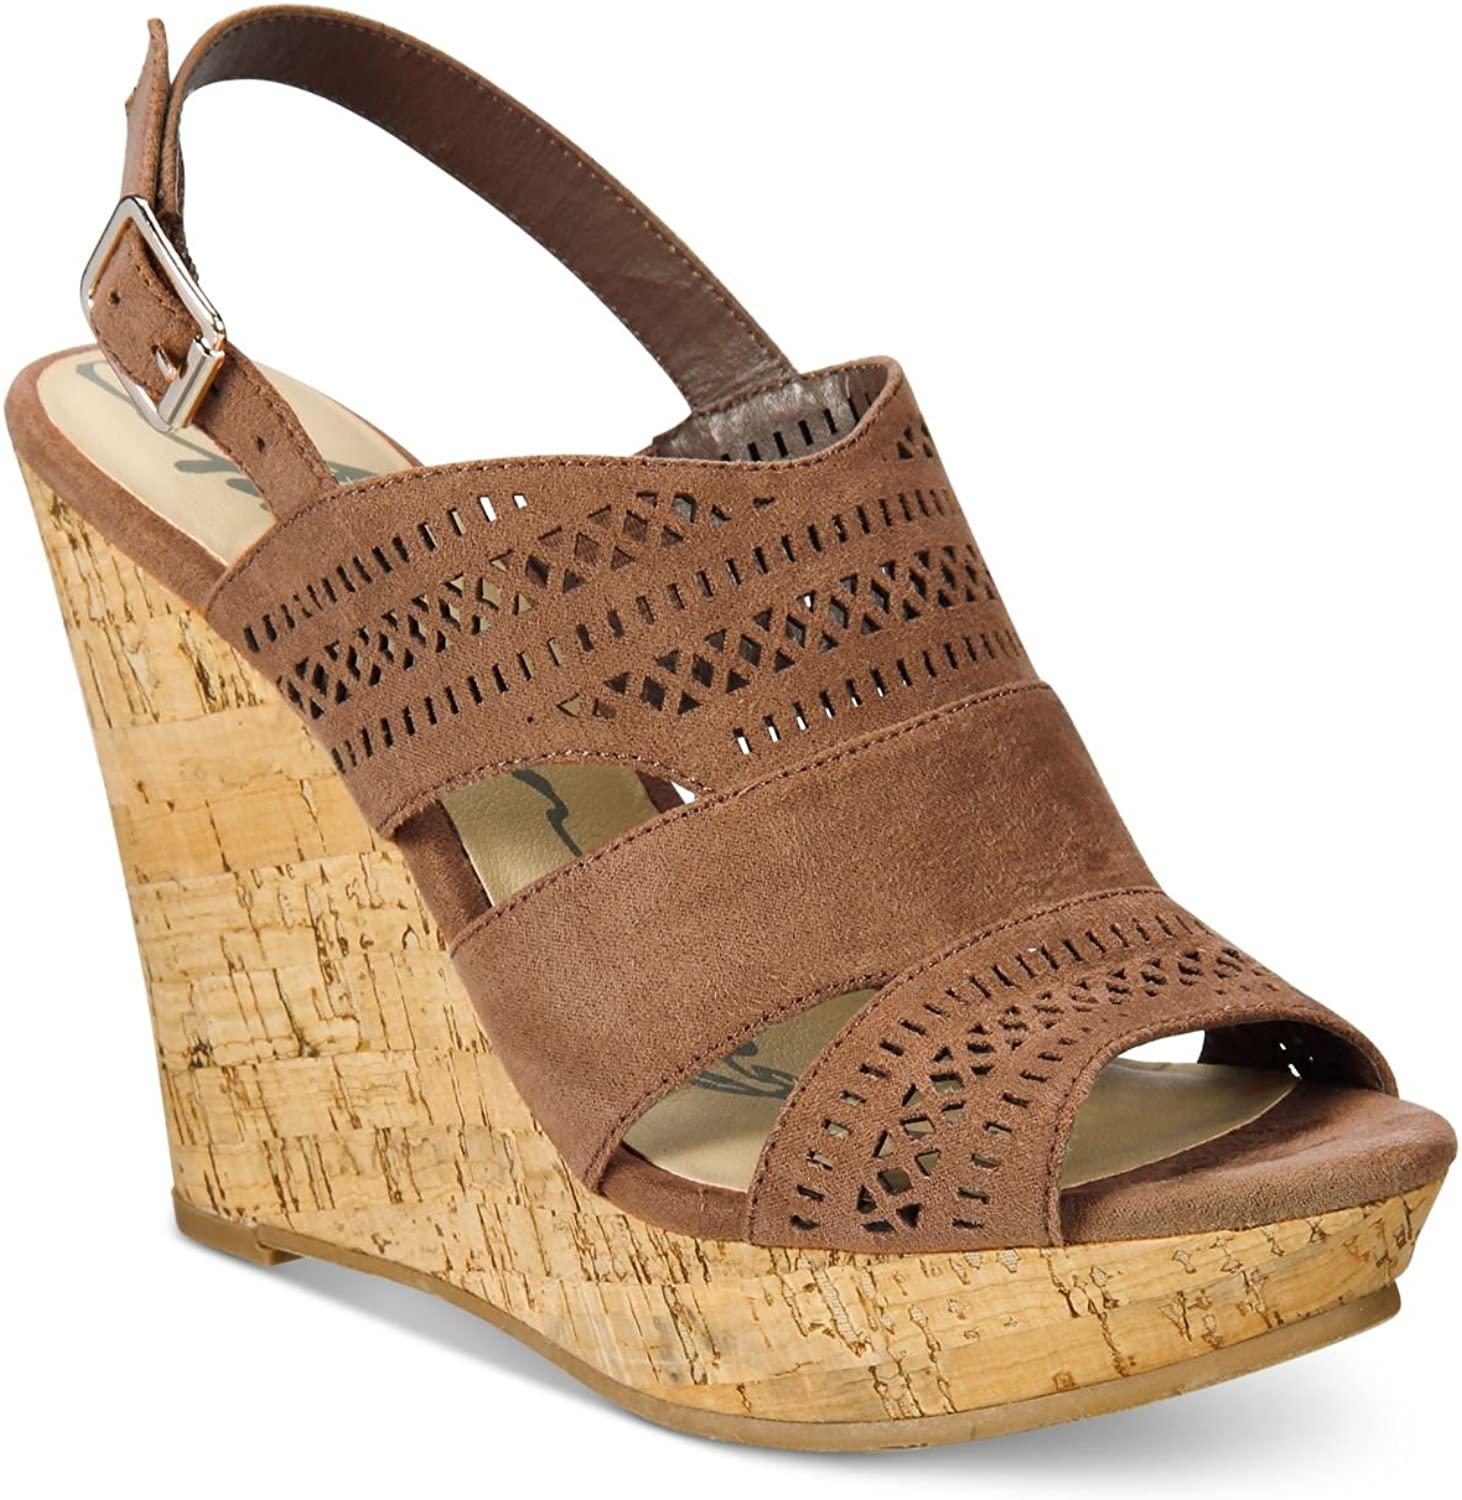 American Rag Mirranda Platform Wedge Sandals